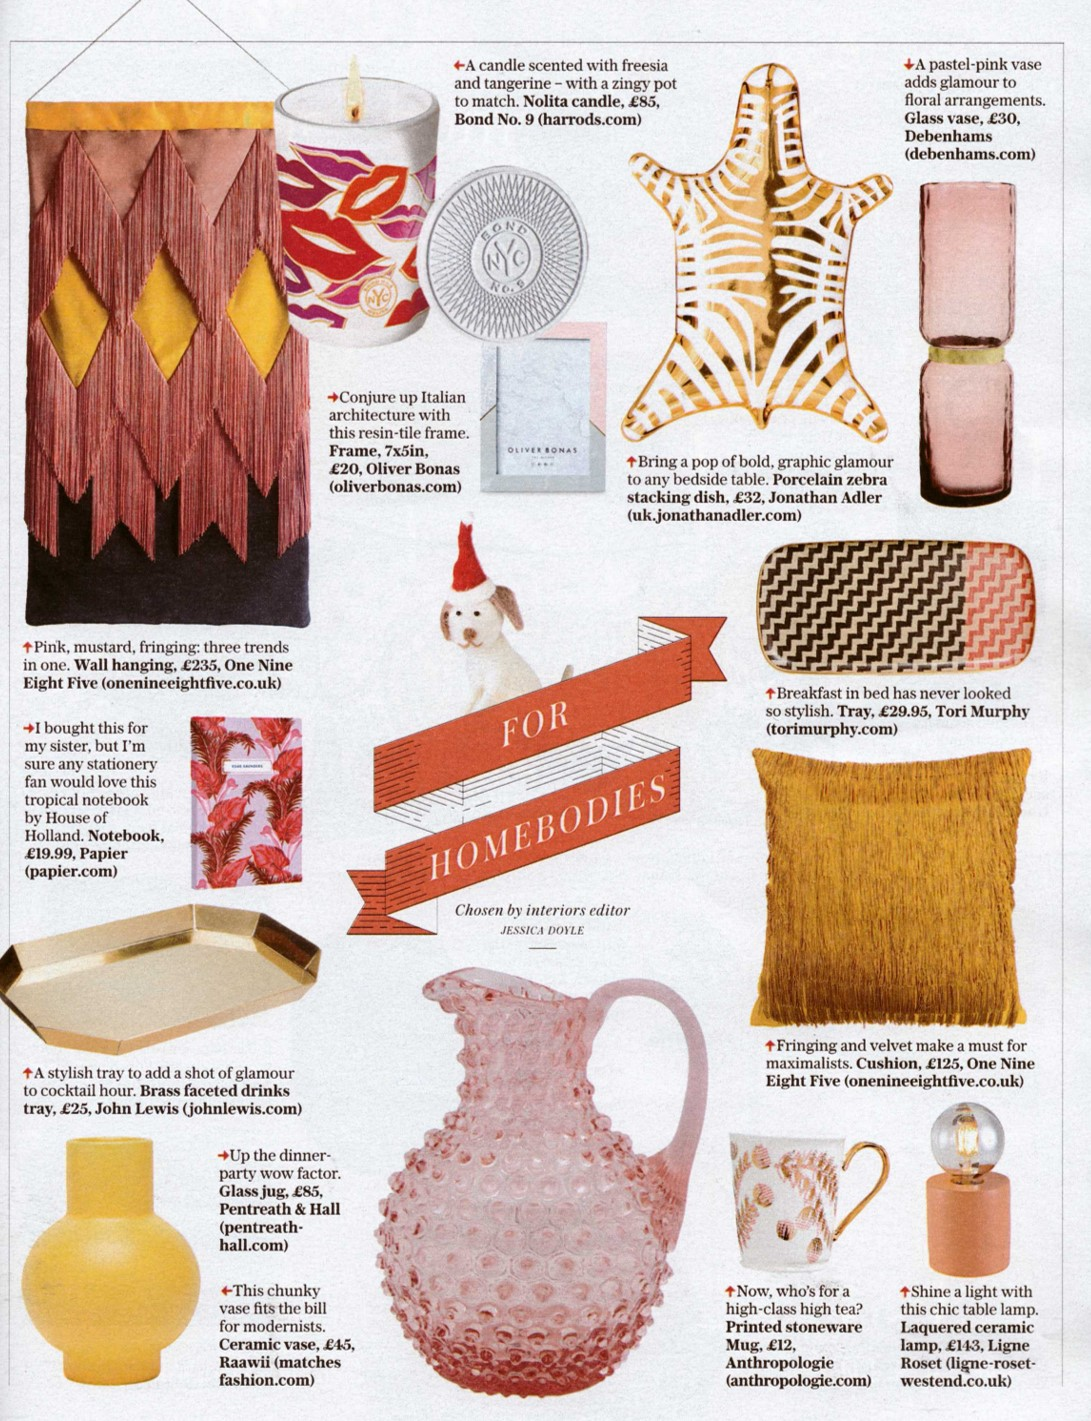 COVERAGE Stella nominates Jonathan Adler, Ligne Roset and Tori Murphy as the go-to gift destinations for homebodies